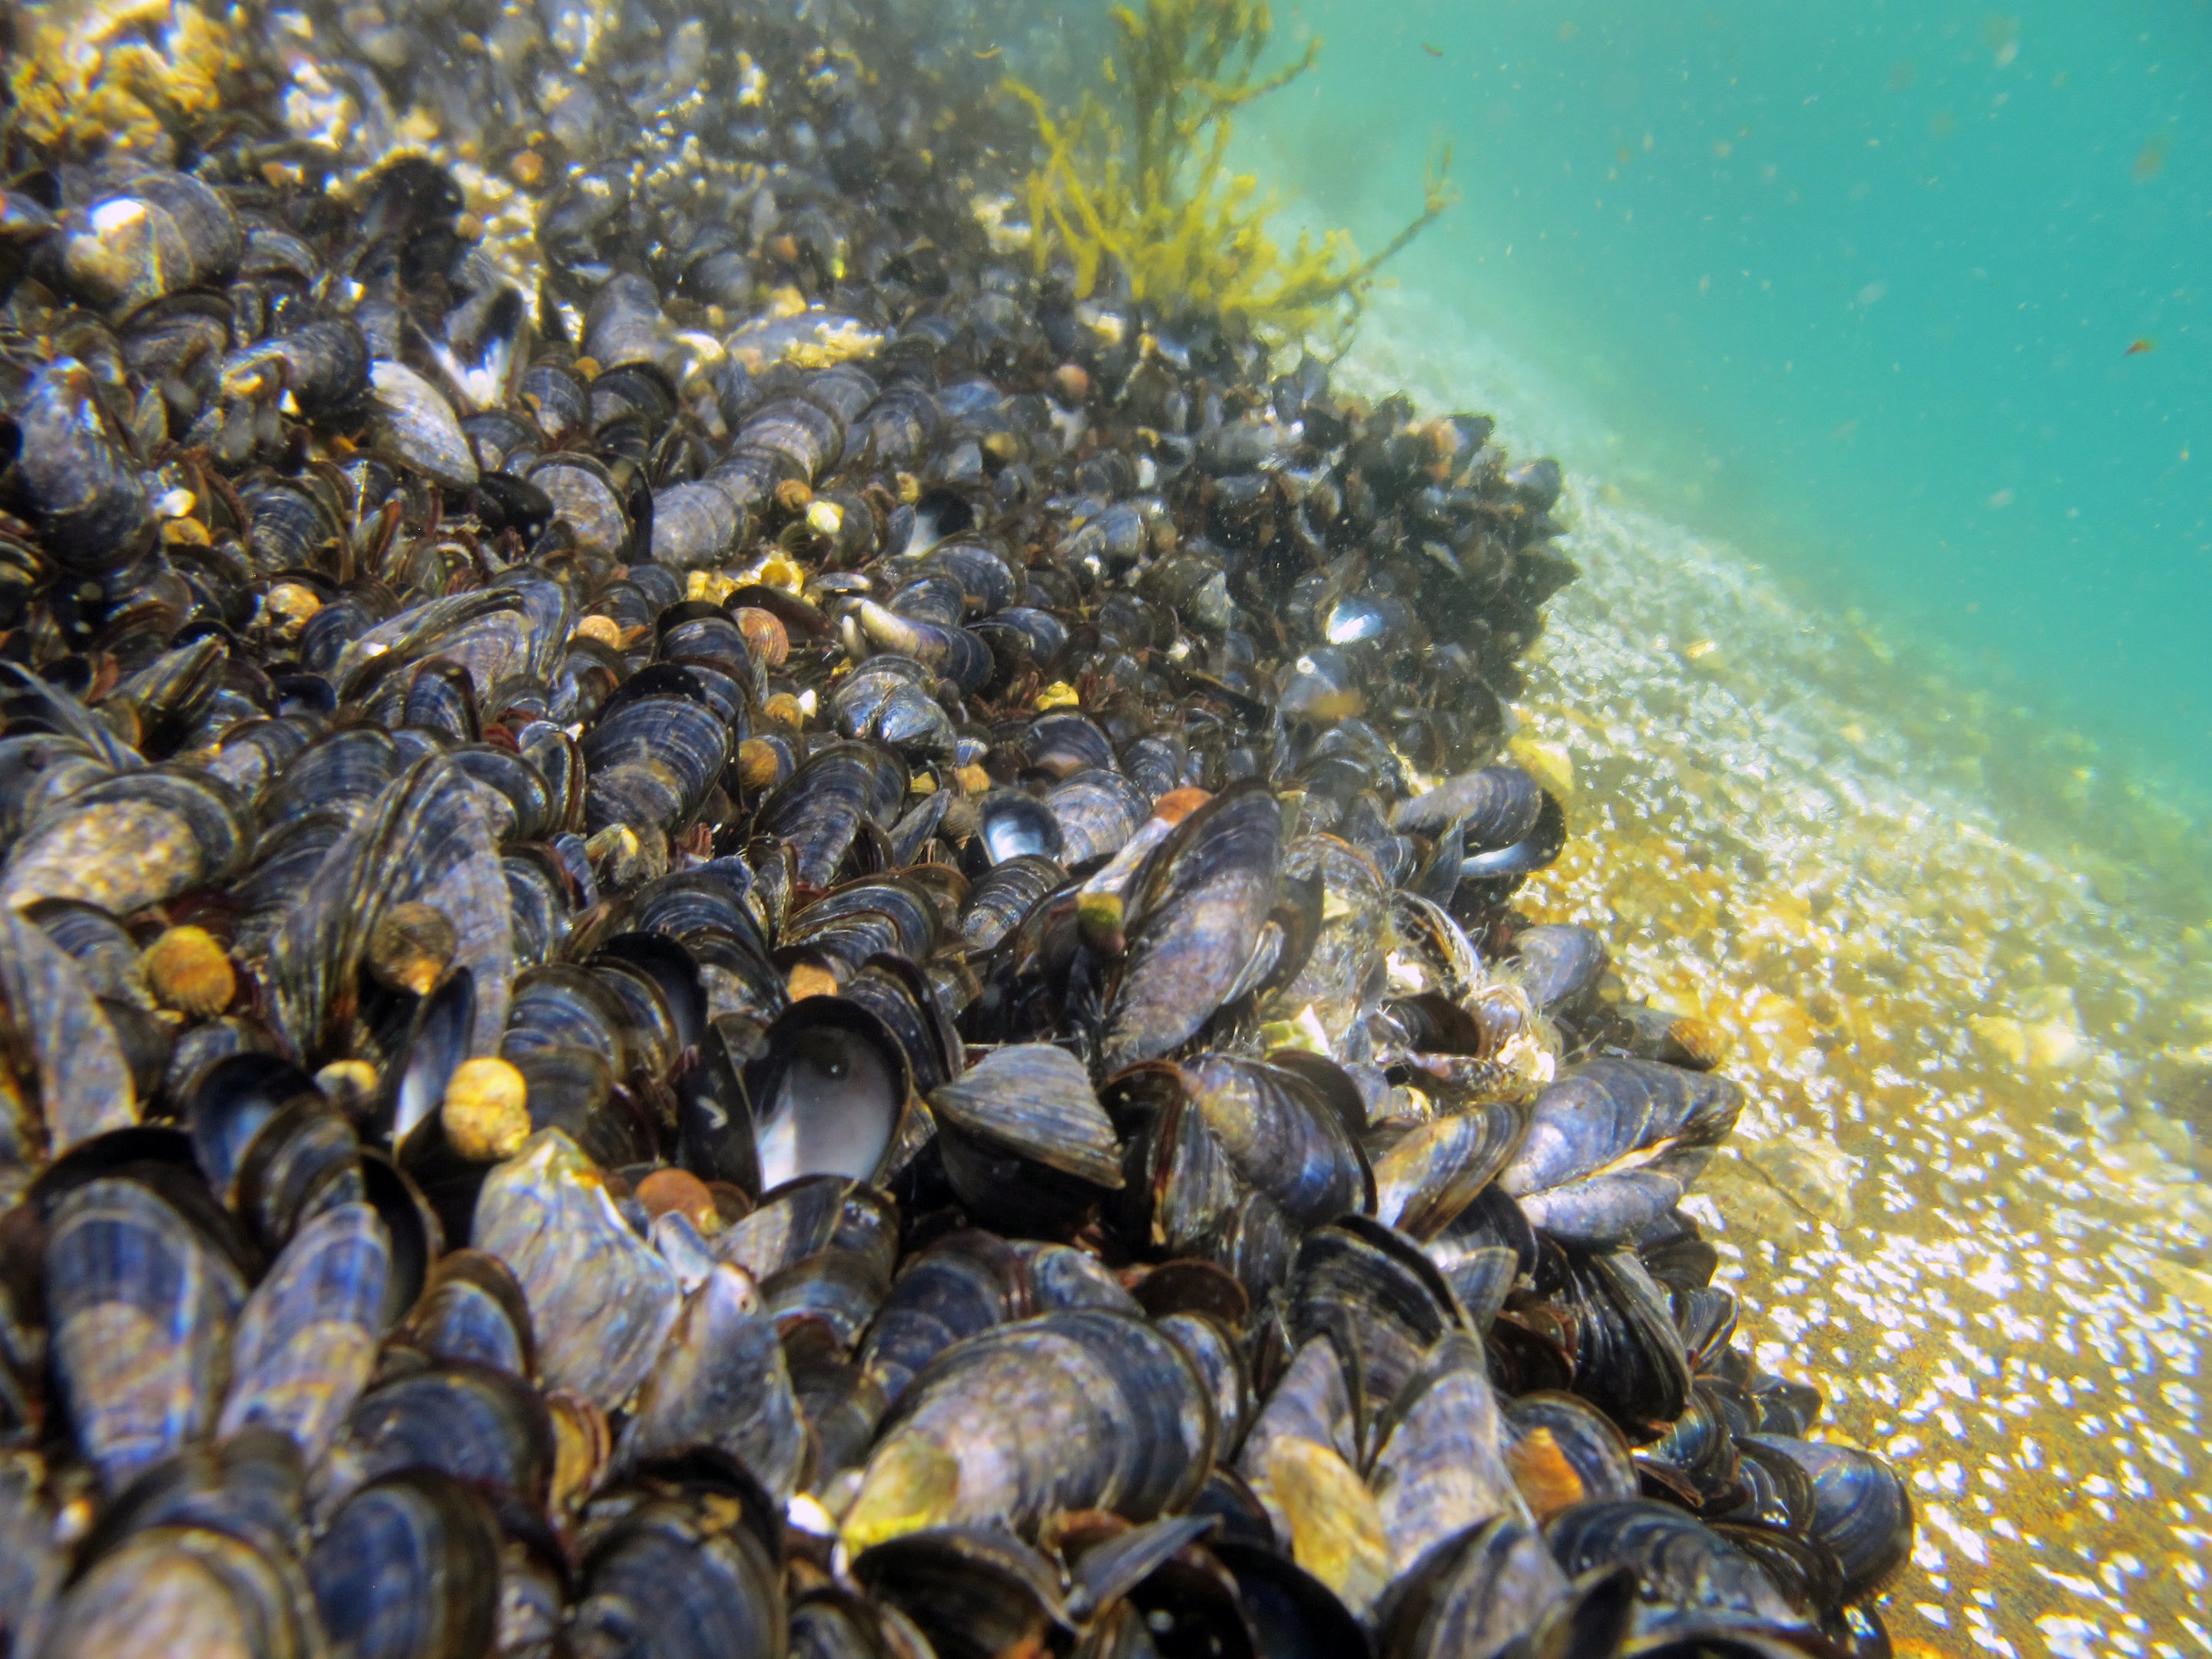 The filtration and storage of pollutants are so efficient that blue mussels are used in environmental monitoring they are like environmental detectives